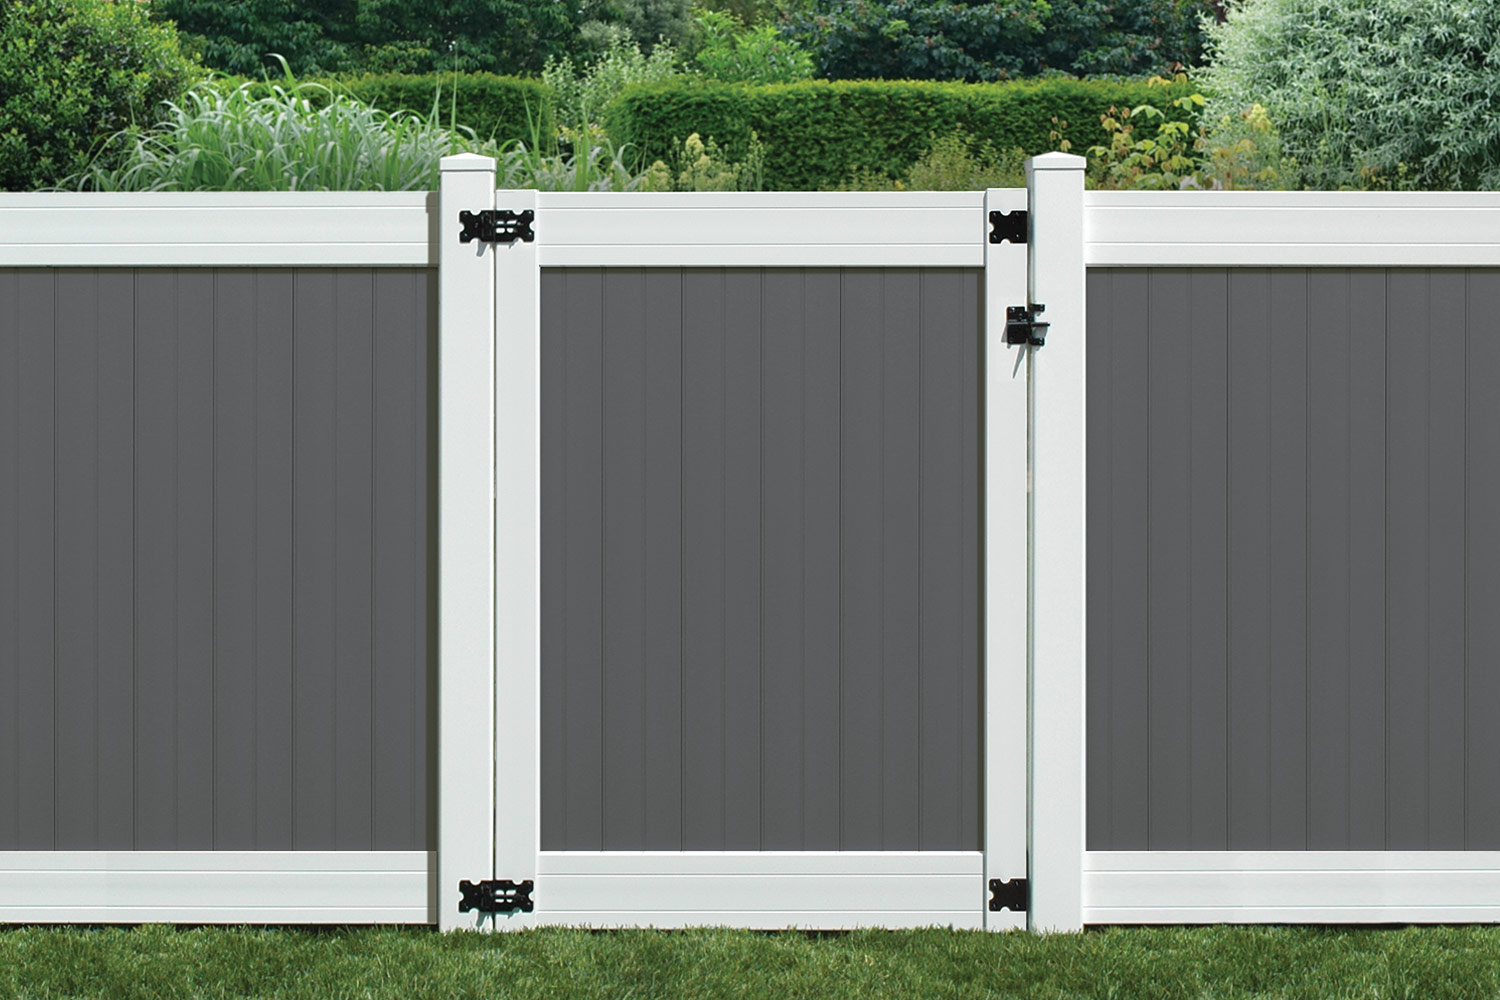 Sixth Avenue Building Products Wexford Privacy Fence and Gate - Gray-White